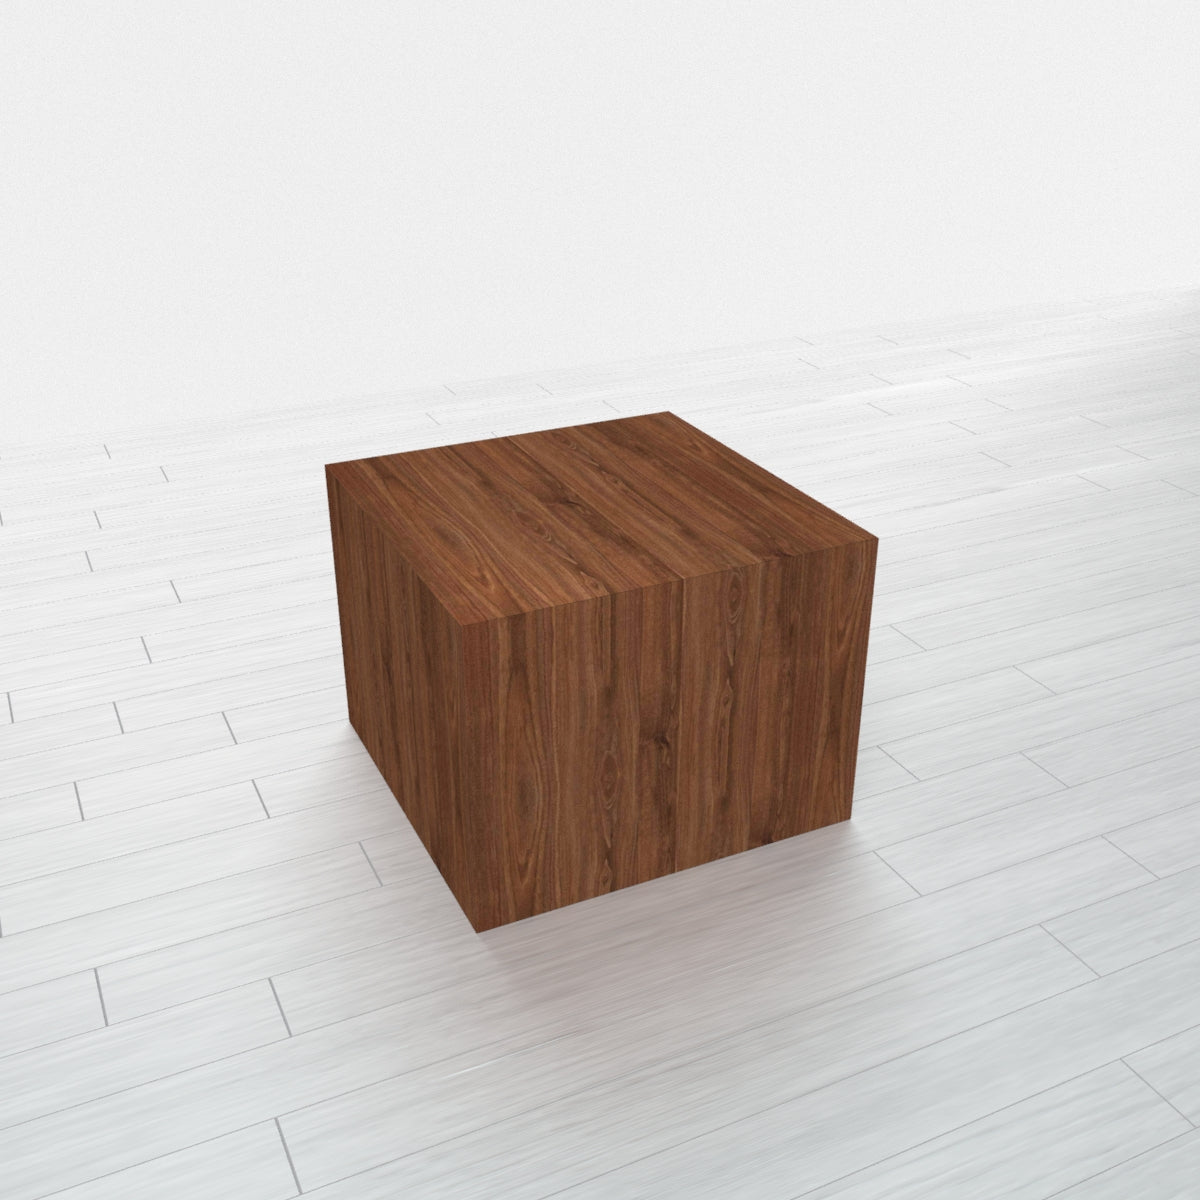 RECTANGLE - Thermo Walnut Base + Thermo Walnut Top - 15x15